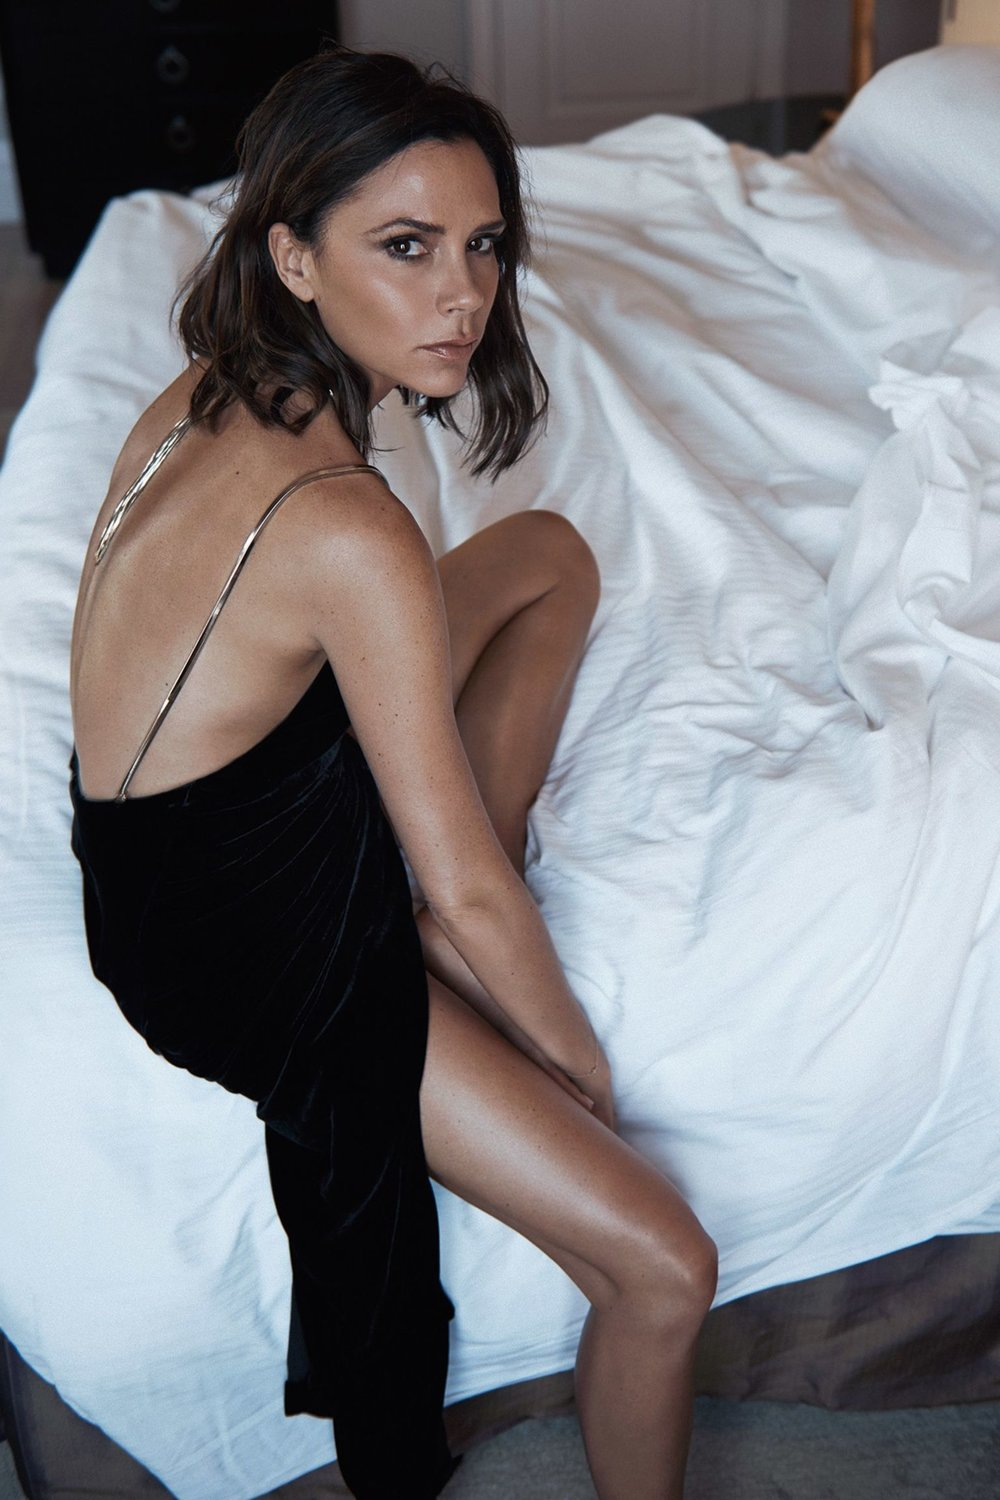 vogue-uk-october-2016-victoria-beckham-by-lachlan-bailey-02.jpg